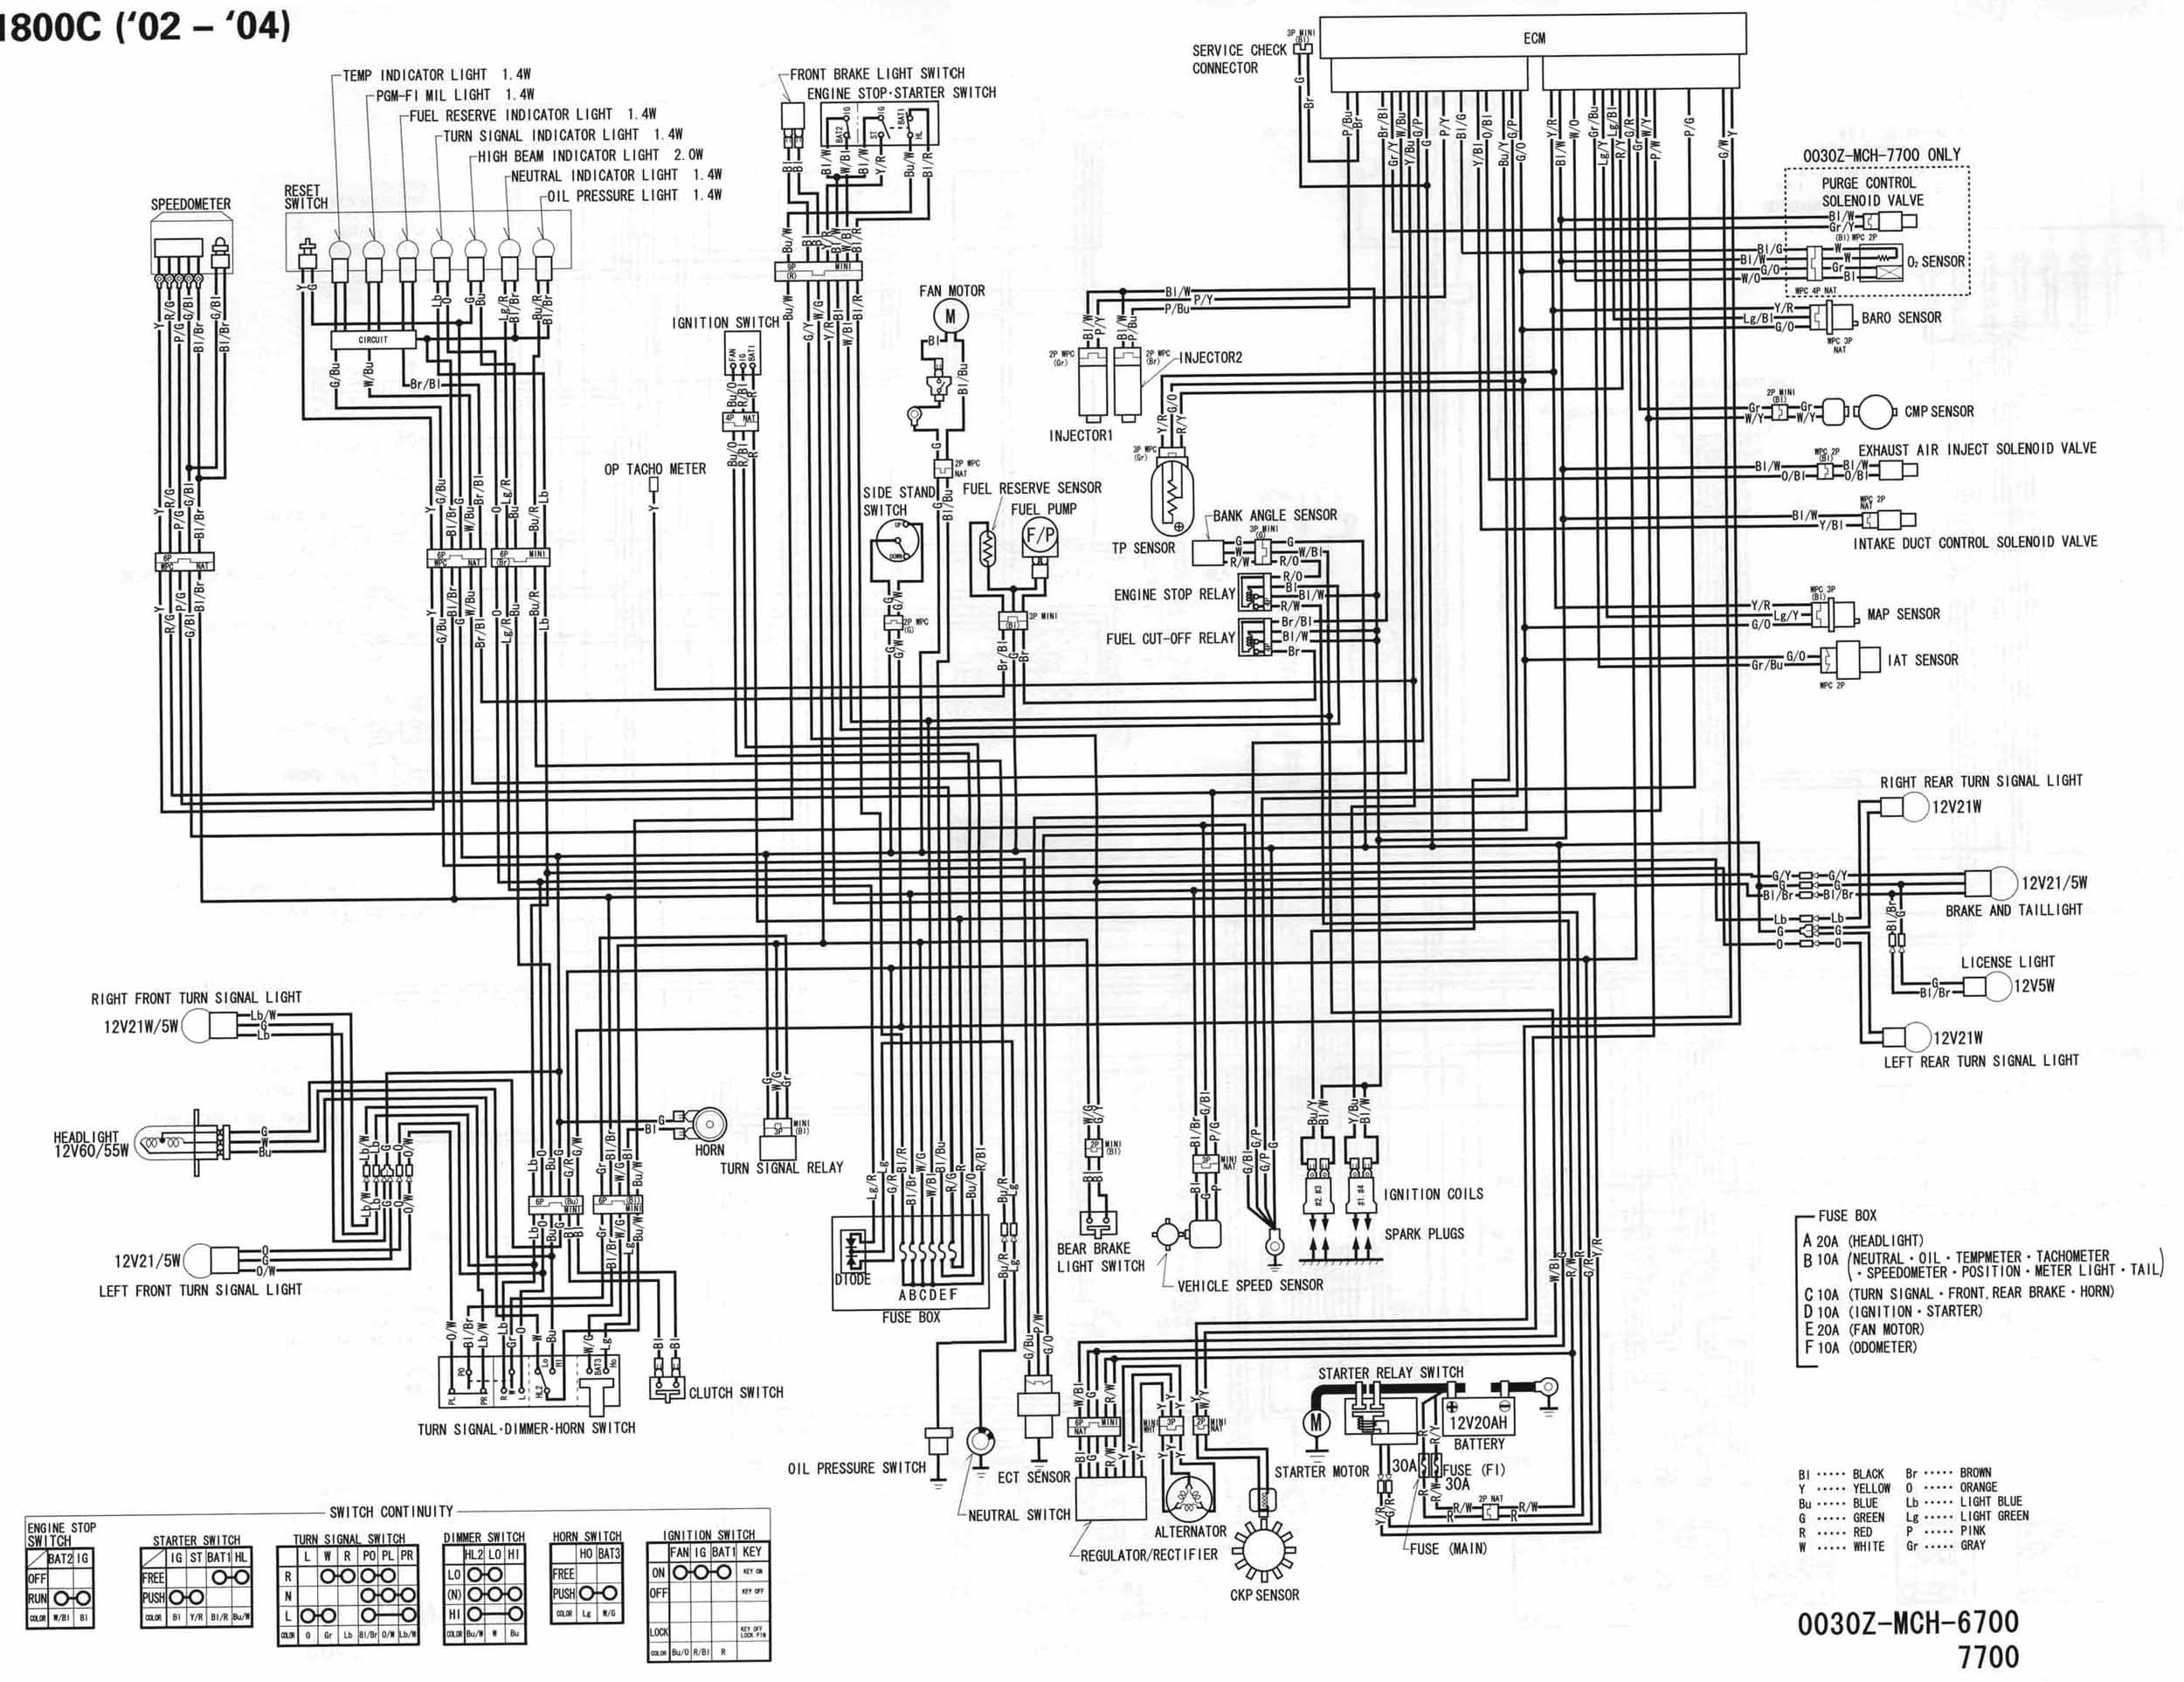 vtx 1800 wiring diagram motorcycle wire schematics acirc bare ...  Tahoe Wiring Diagram Aux on cd diagram, radio diagram, air diagram, tape diagram, space diagram, history diagram, awd diagram, lg diagram, ipod diagram, filter diagram, bluetooth diagram, auto diagram, art diagram, satellite diagram, cable diagram, volume diagram, fuse diagram, power diagram, speed diagram, pc diagram,